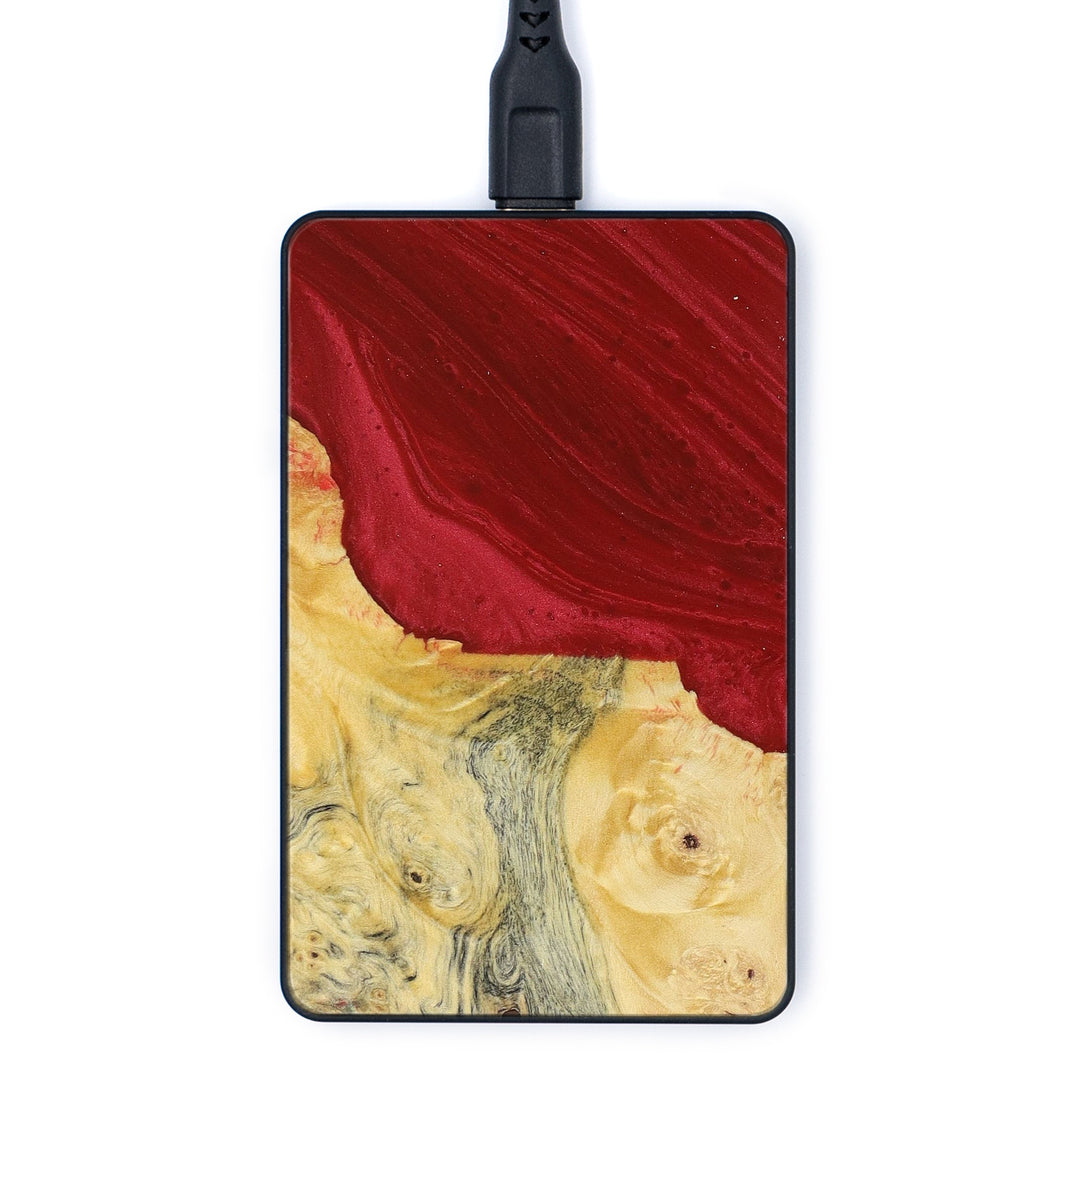 Thin Wood+Resin Wireless Charger - Moll (Dark Red, 383389)